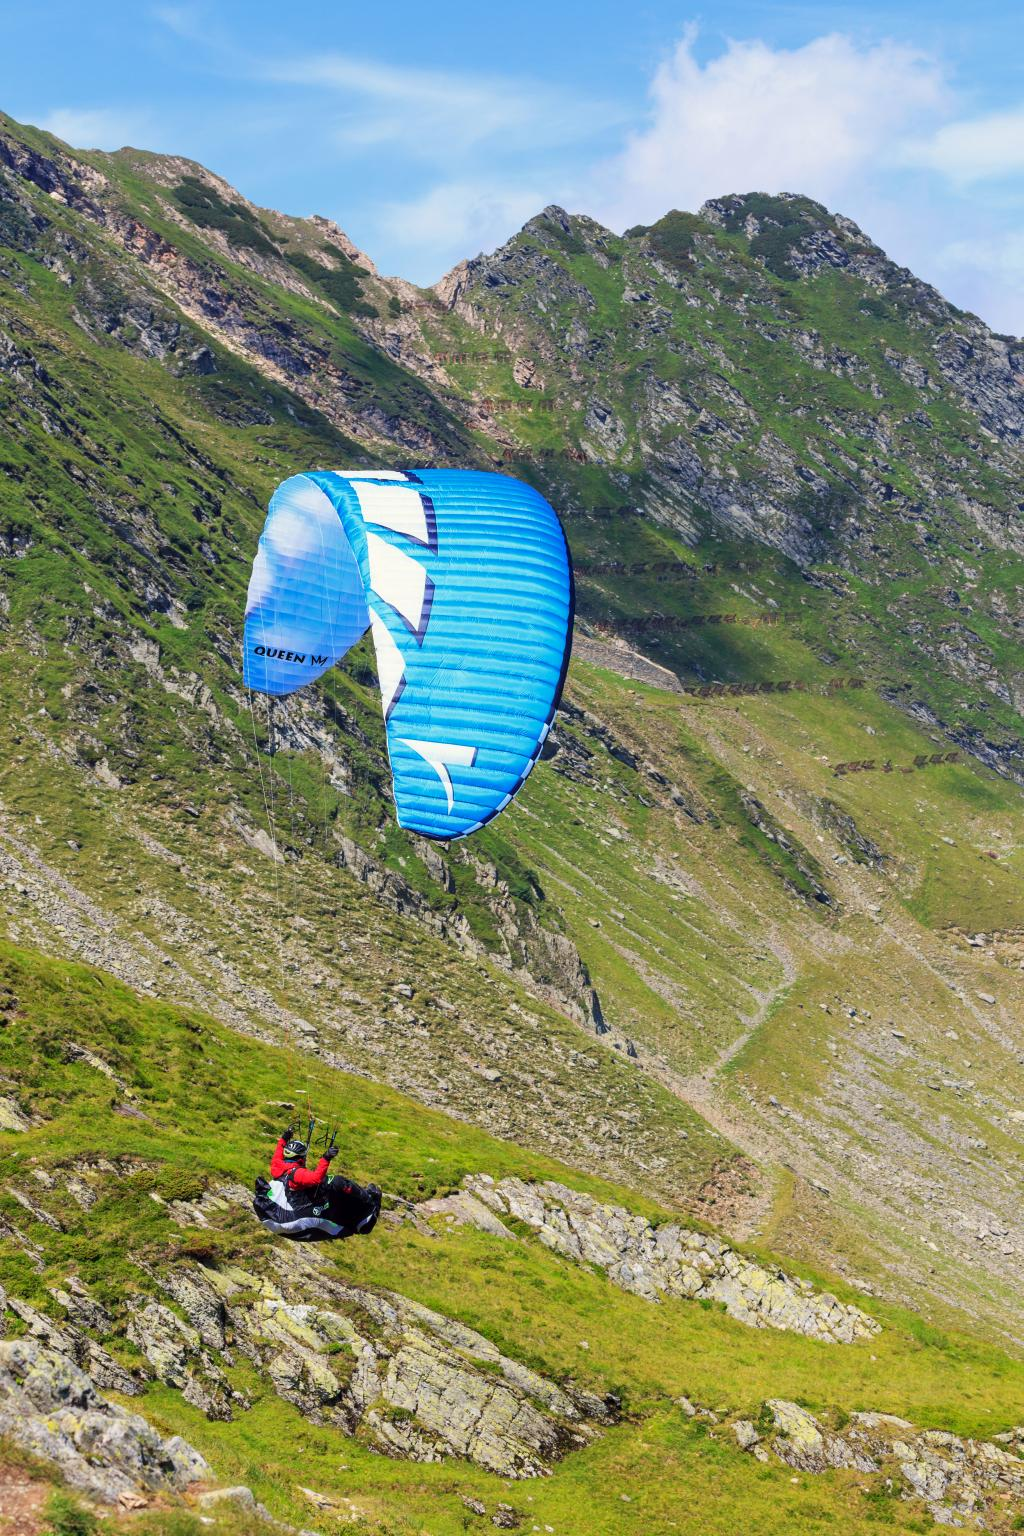 Balea Lake, Romania - JULY 21, 2014: Unidentified paraglider in Balea Lake, Fagaras Mountain, Romania. Paragliding is one of the most popular adventure sports in the world